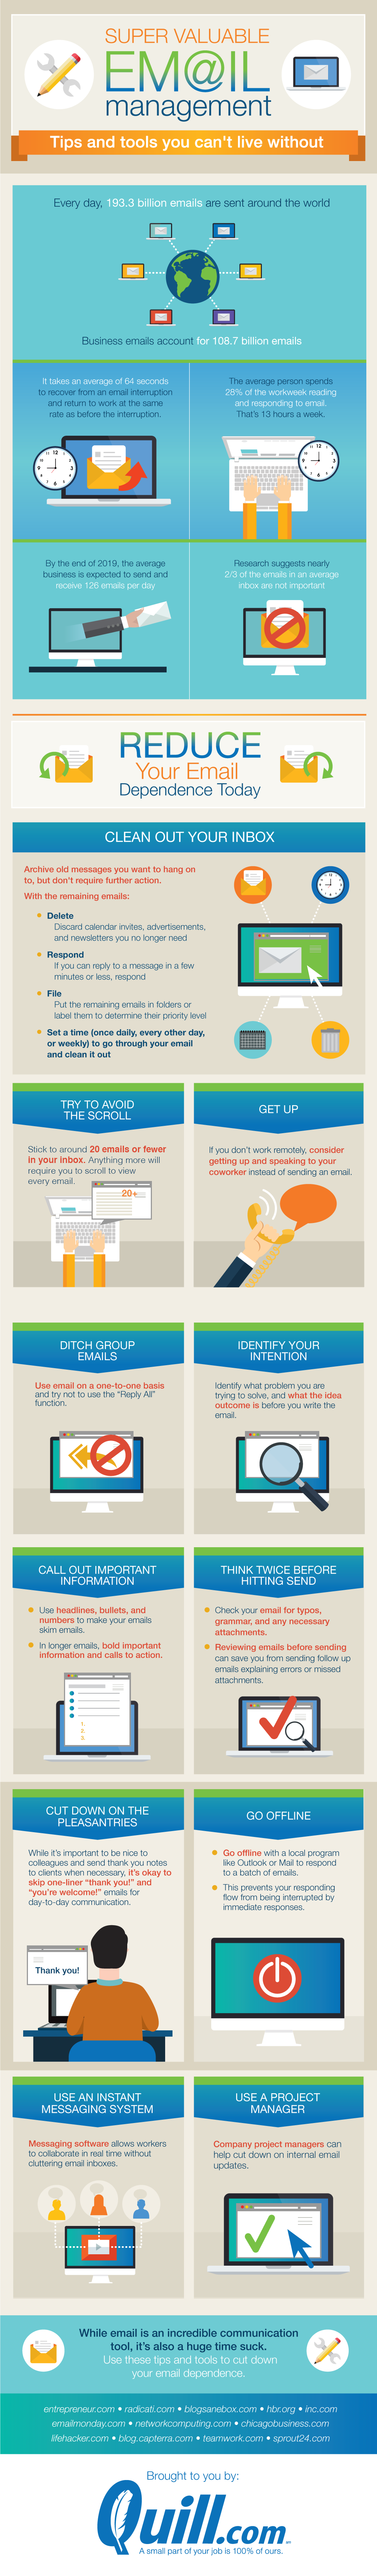 Super valuable email management tips and tools you can't live without #infographic